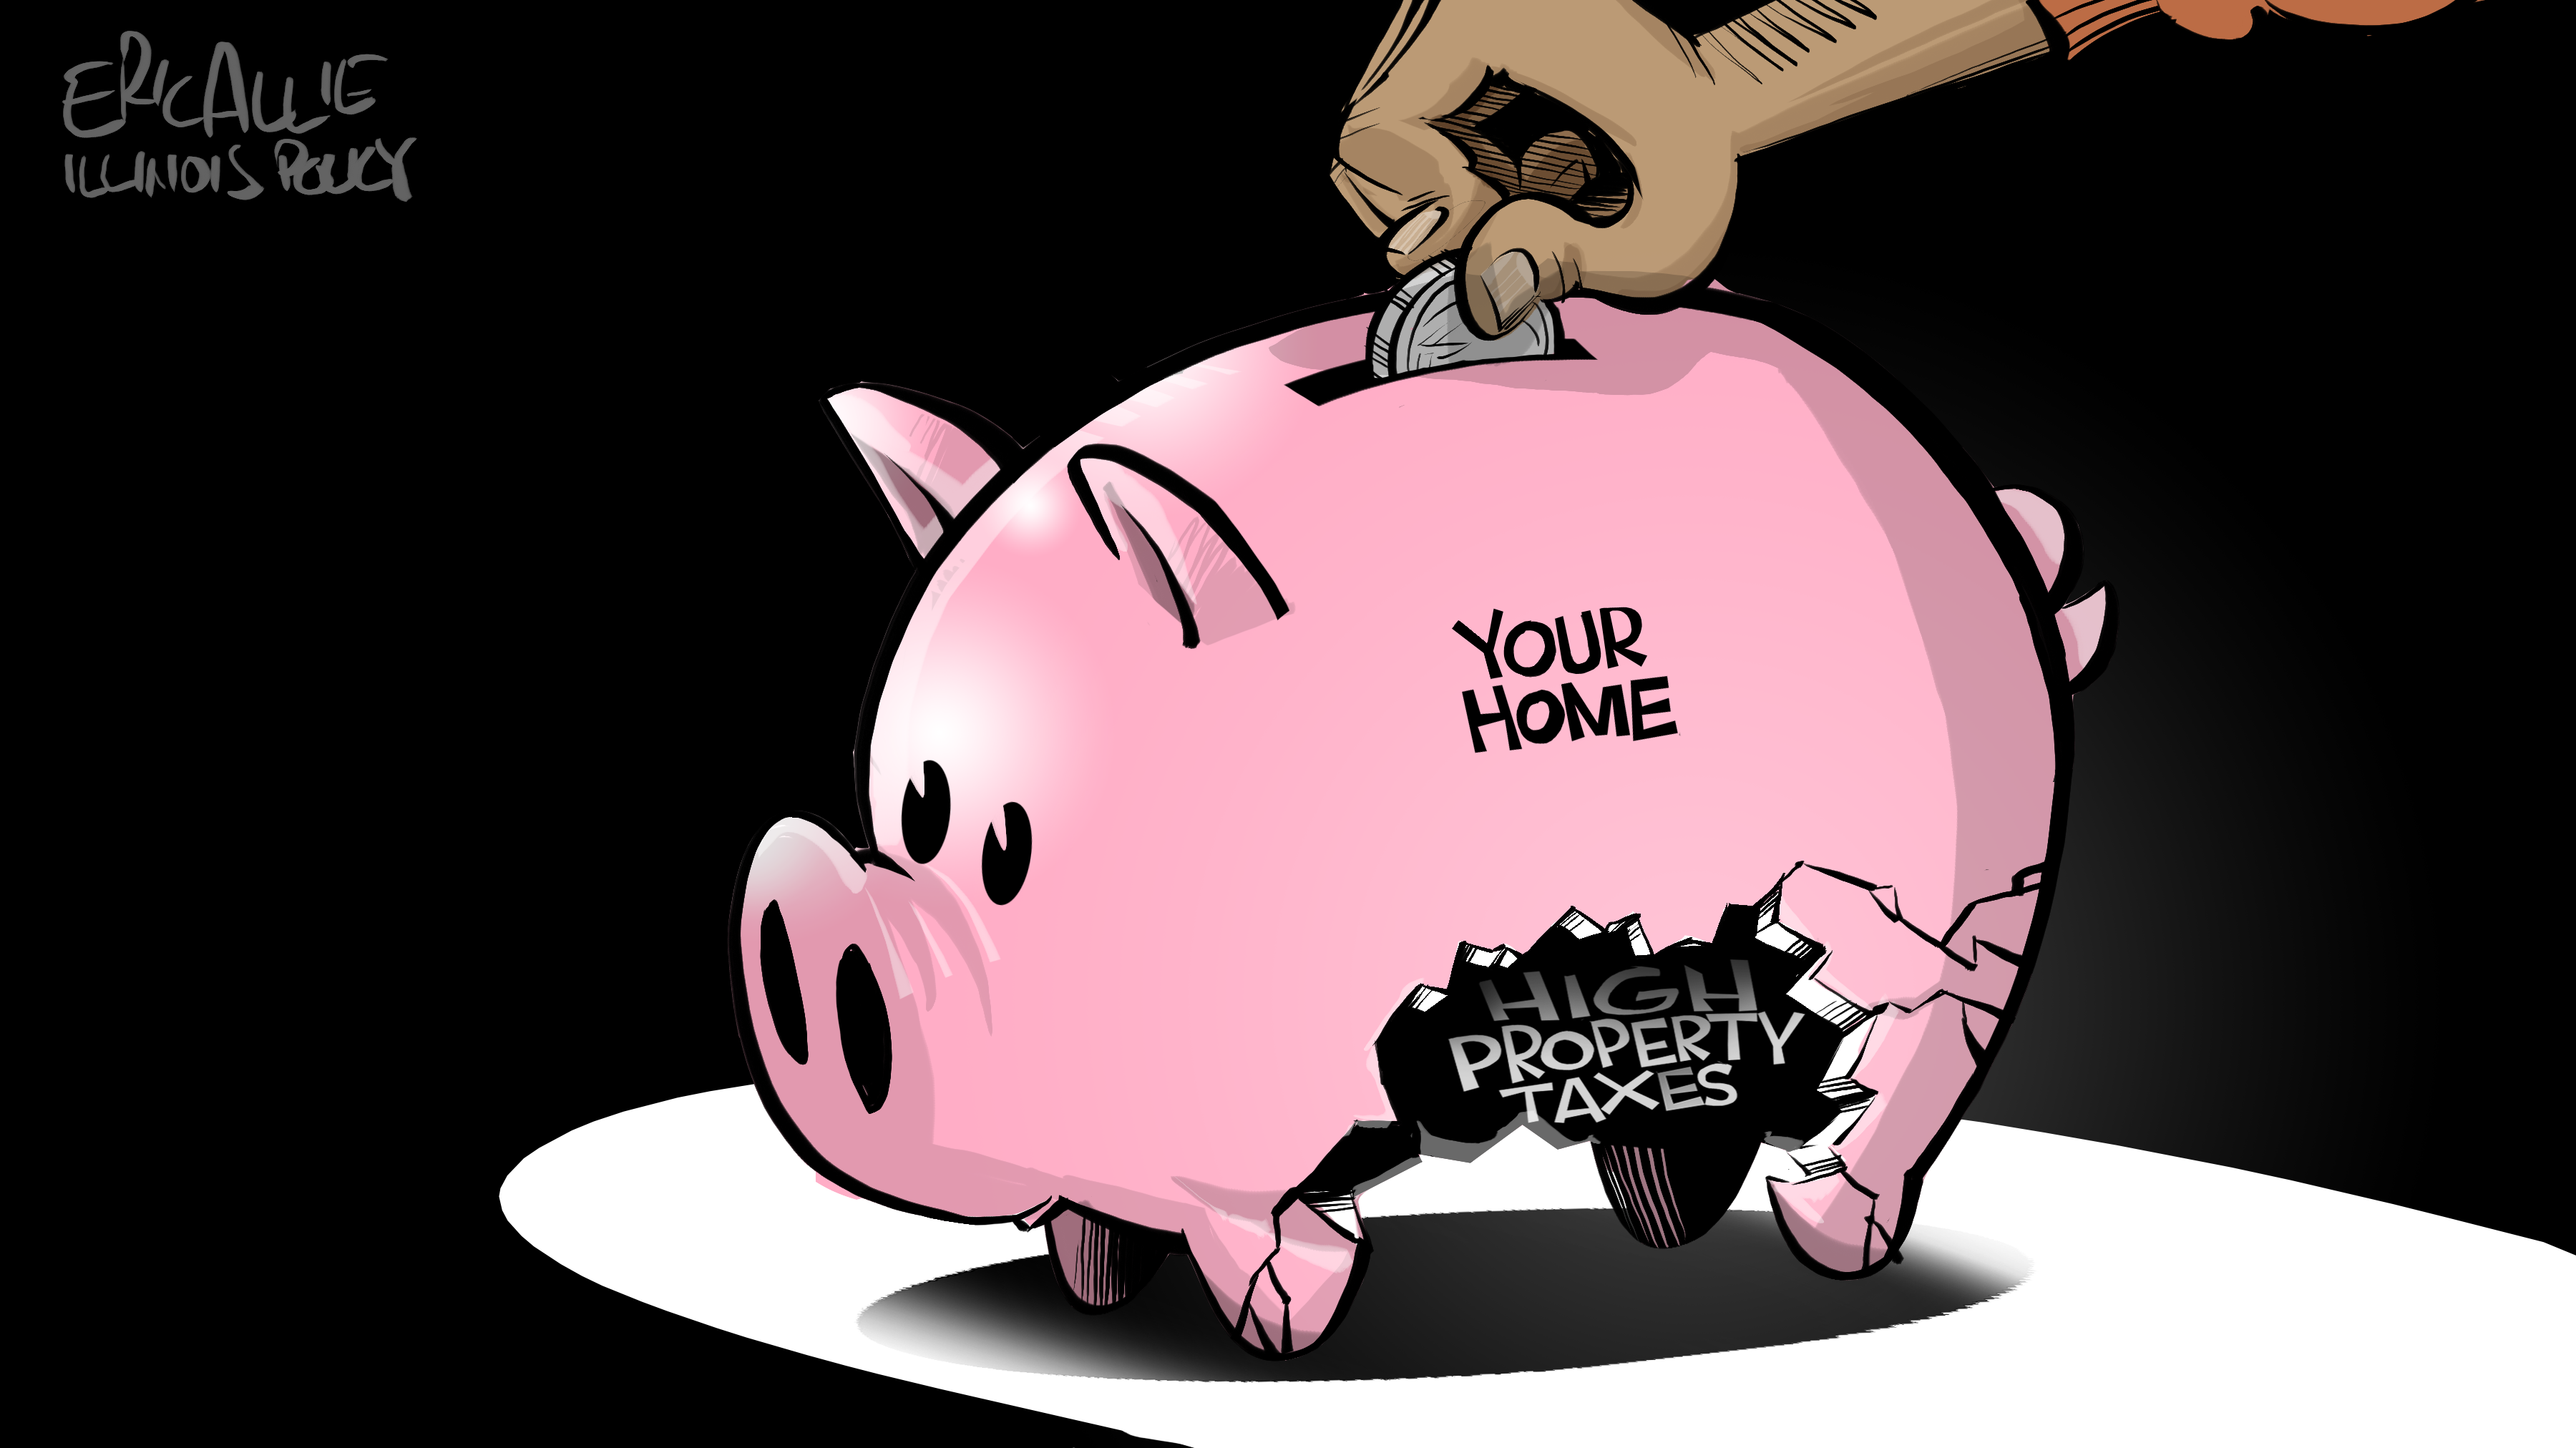 Property taxes stealing home value